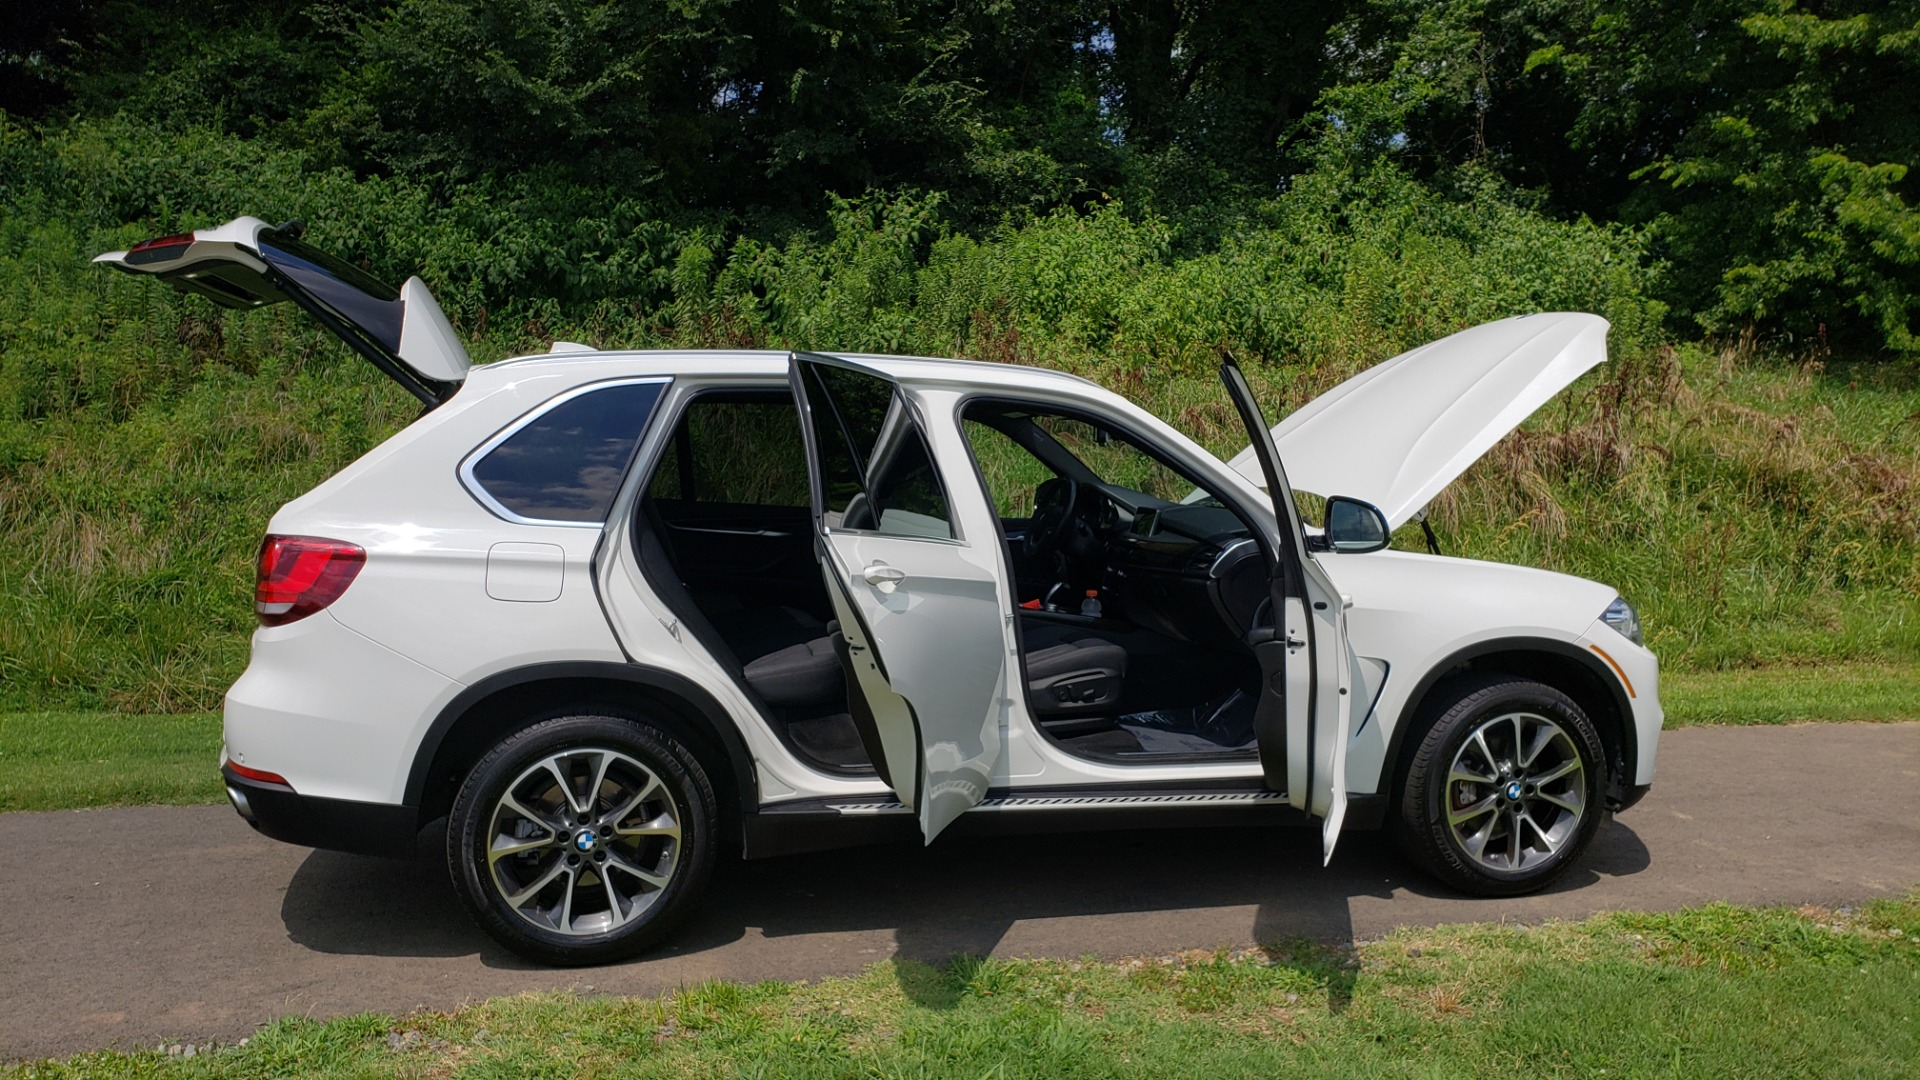 Used 2017 BMW X5 XDRIVE35I / NAV / SUNROOF / RUNNING BOARDS / REARVIEW for sale $33,995 at Formula Imports in Charlotte NC 28227 21